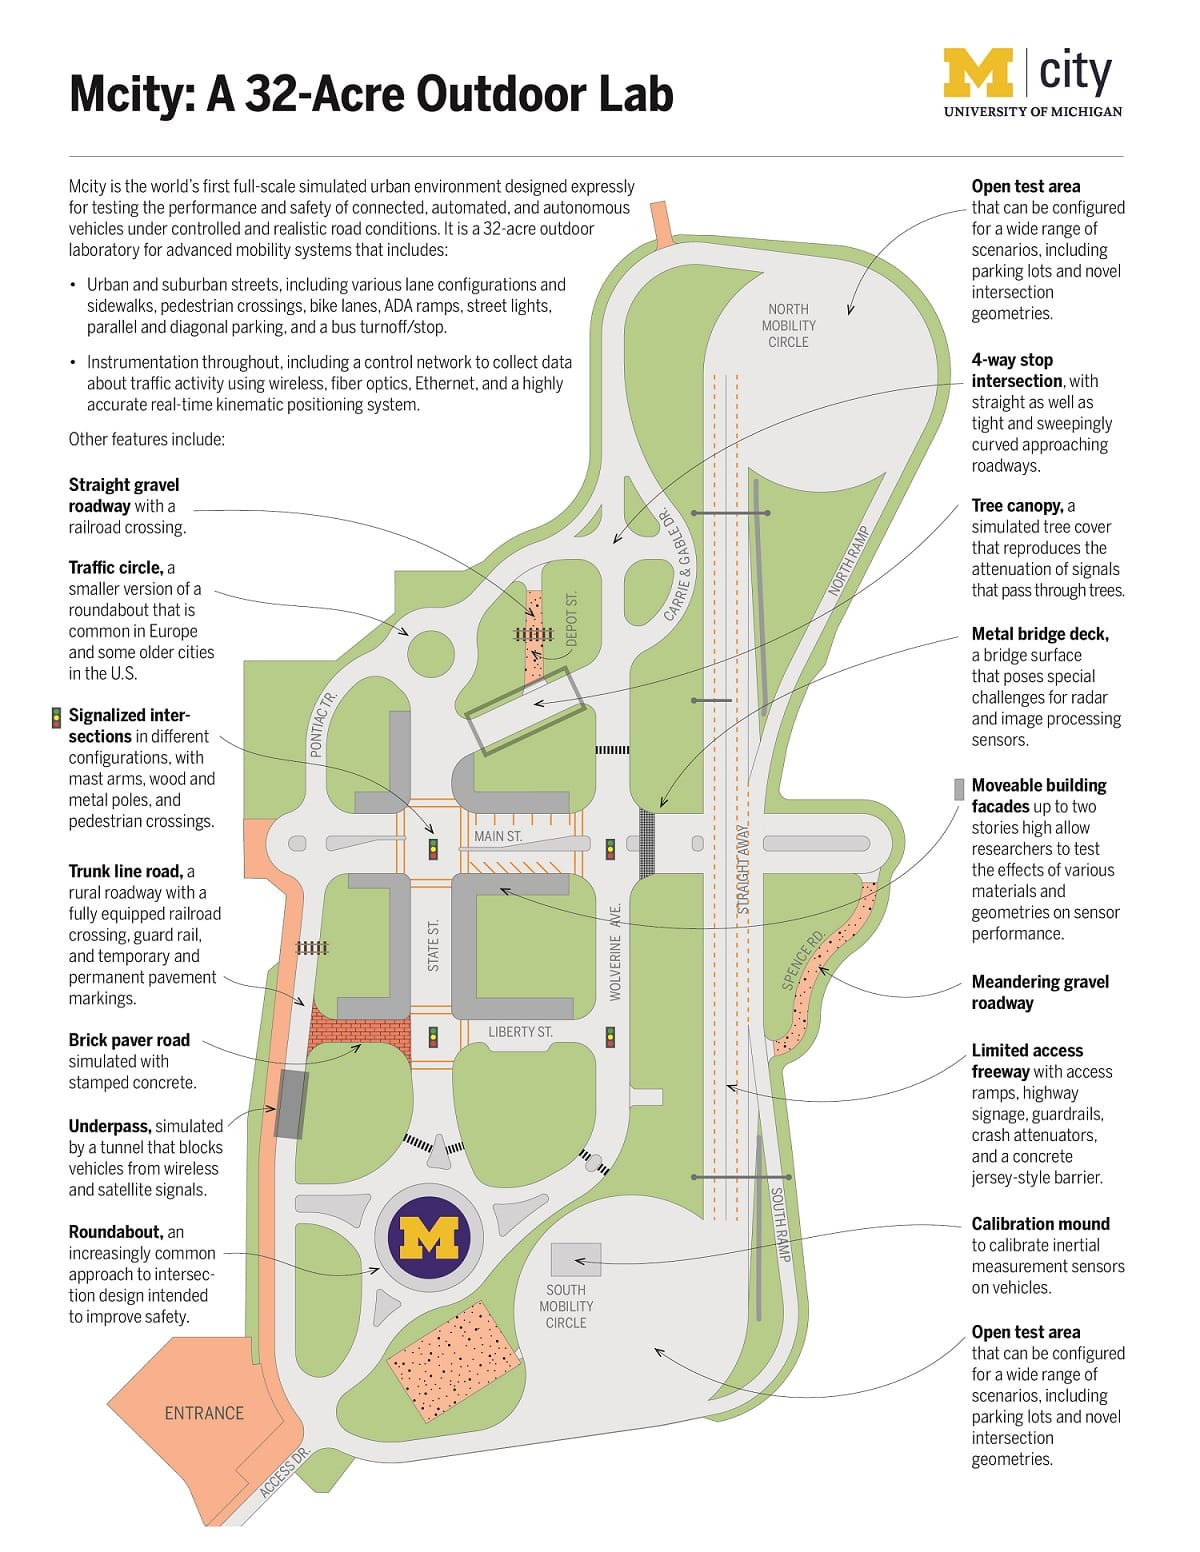 Mcity Feature Map - A 32-Acre Outdoor Lab (University of Michigan)